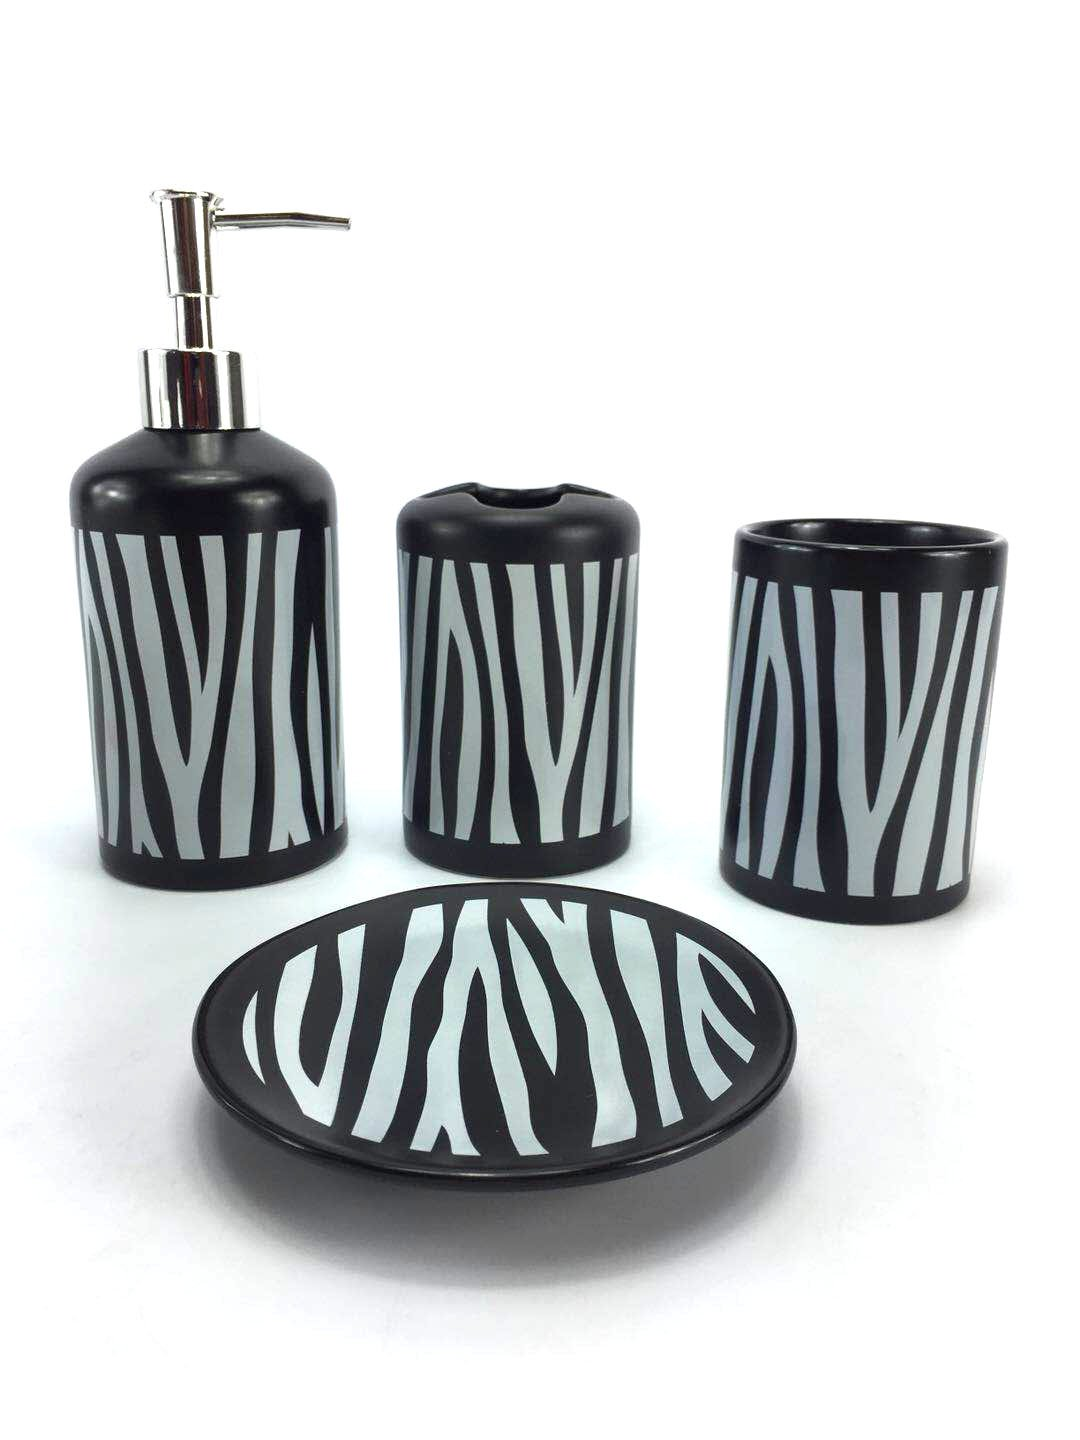 WPM 4 Piece Ceramic Bath Accessory Set Black White Zebra Animal Print Bathroom Soap or Lotion Dispenser w/Toothbrush Holder, Tumbler, Soap Dish